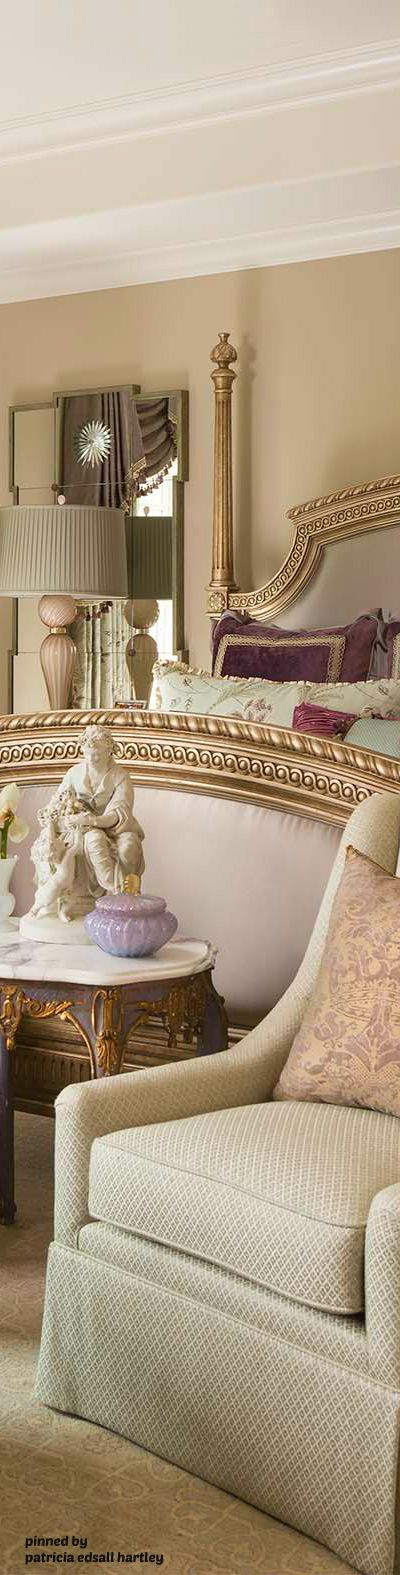 458 best beautiful master bedrooms images on pinterest